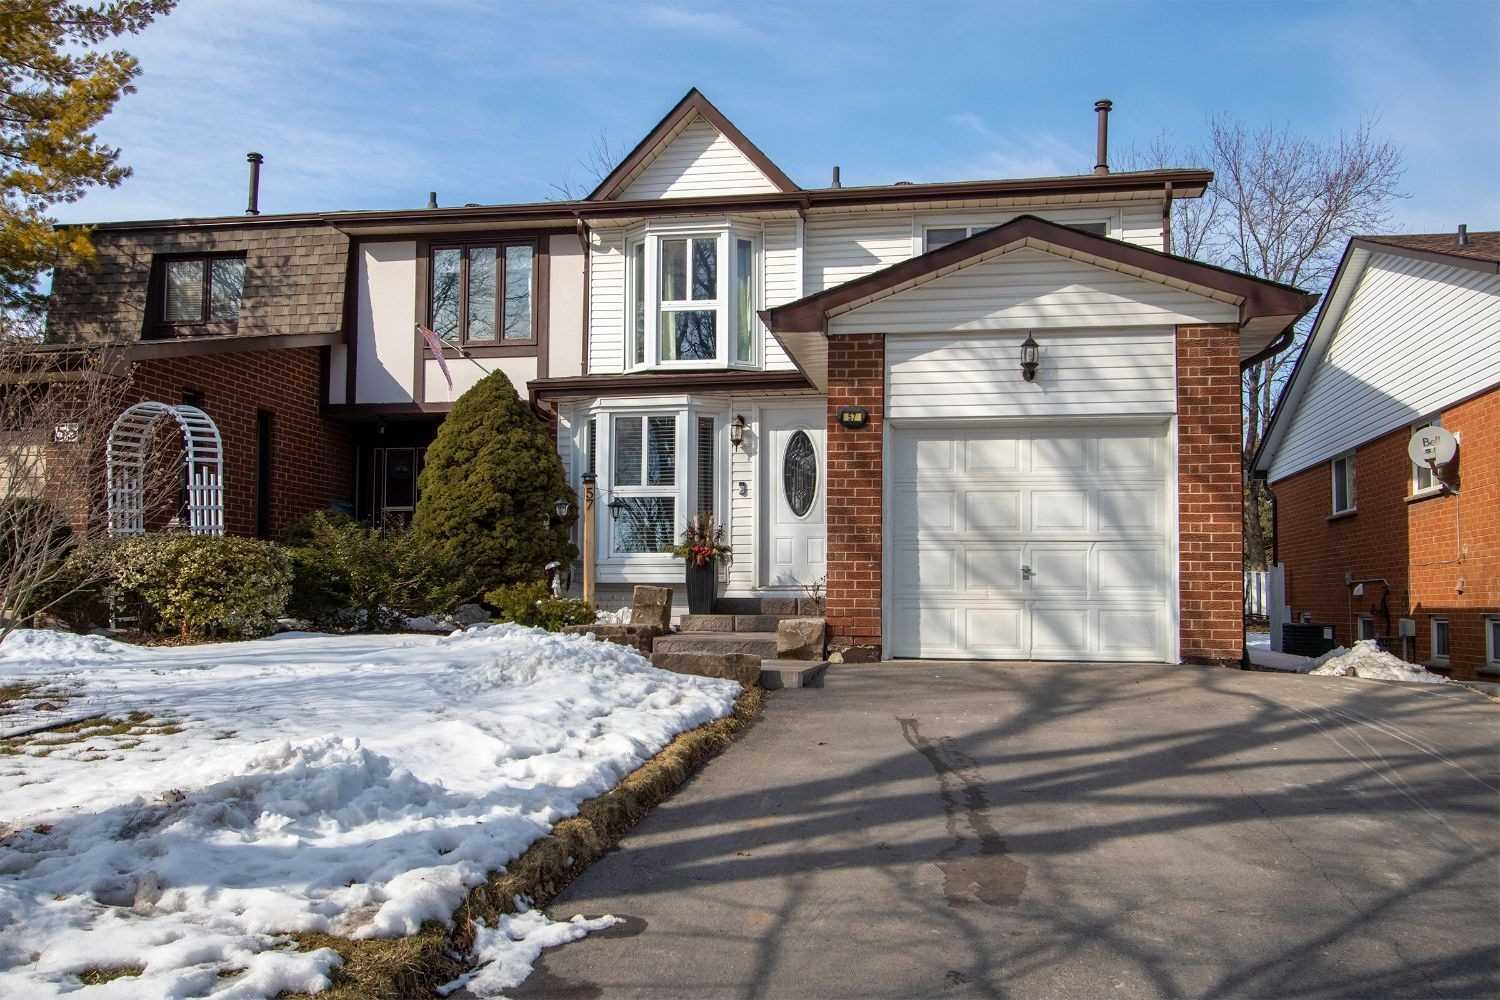 pictures of house for sale MLS: E4699997 located at 57 Renfield Cres, Whitby L1P1B2